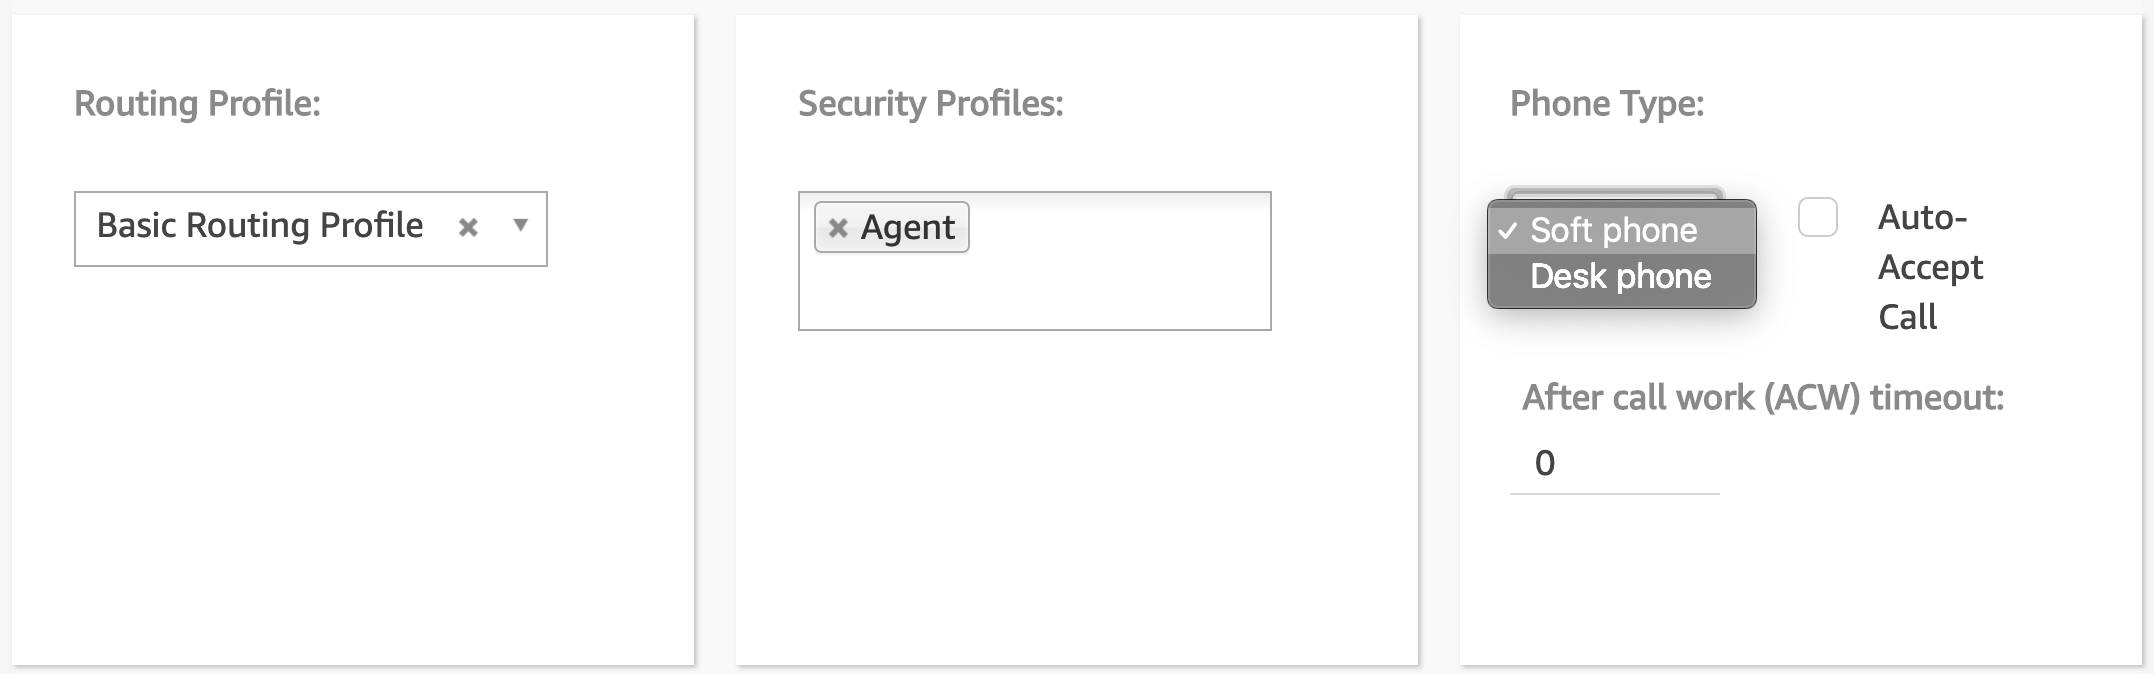 The Add user details section with Basic Routing Profile, Agent, and Soft phone selected